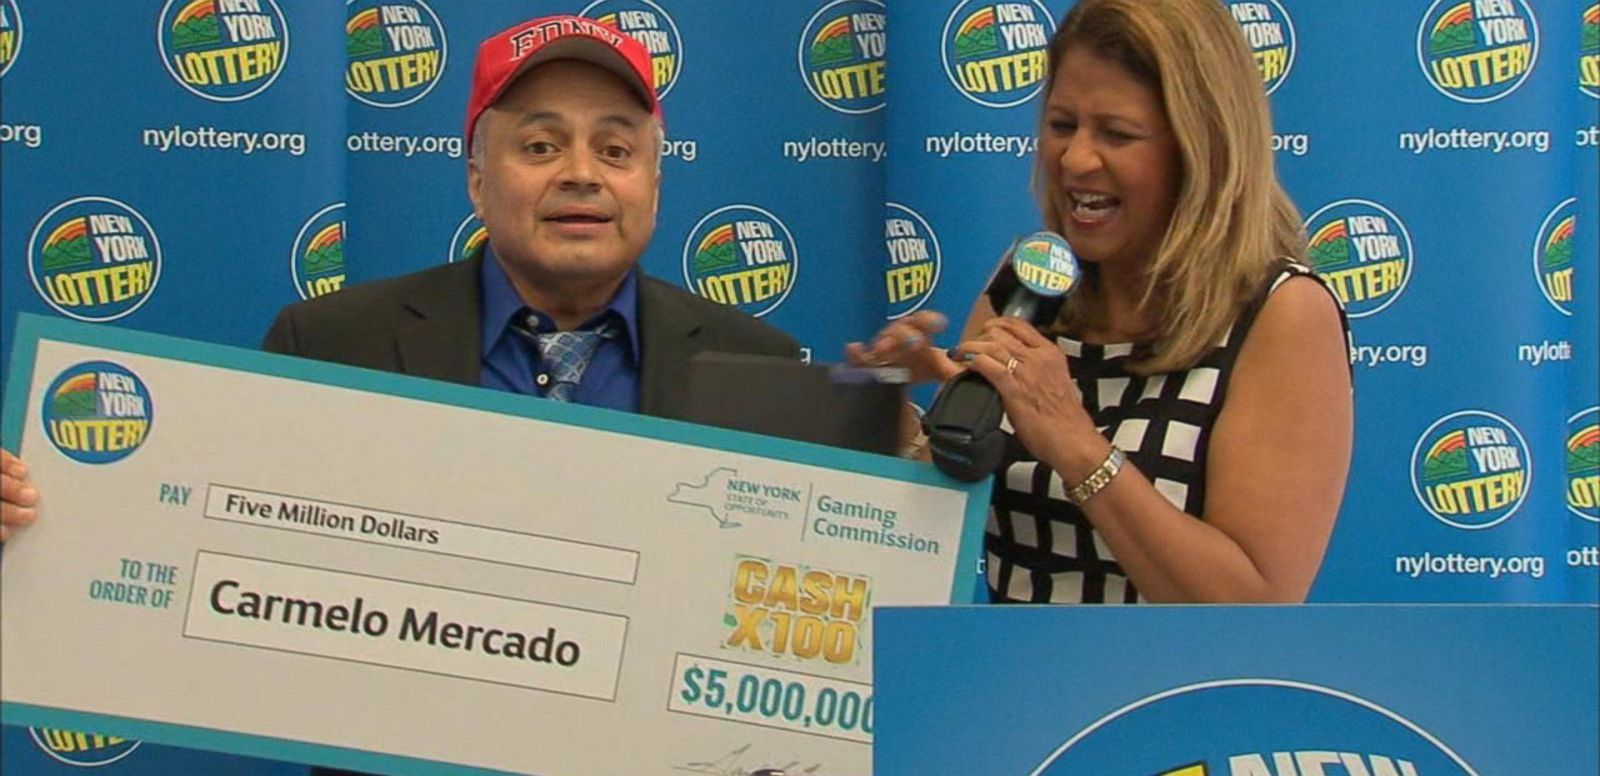 VIDEO: Retired NYC Firefighter Wins Millions in Lottery Drawing